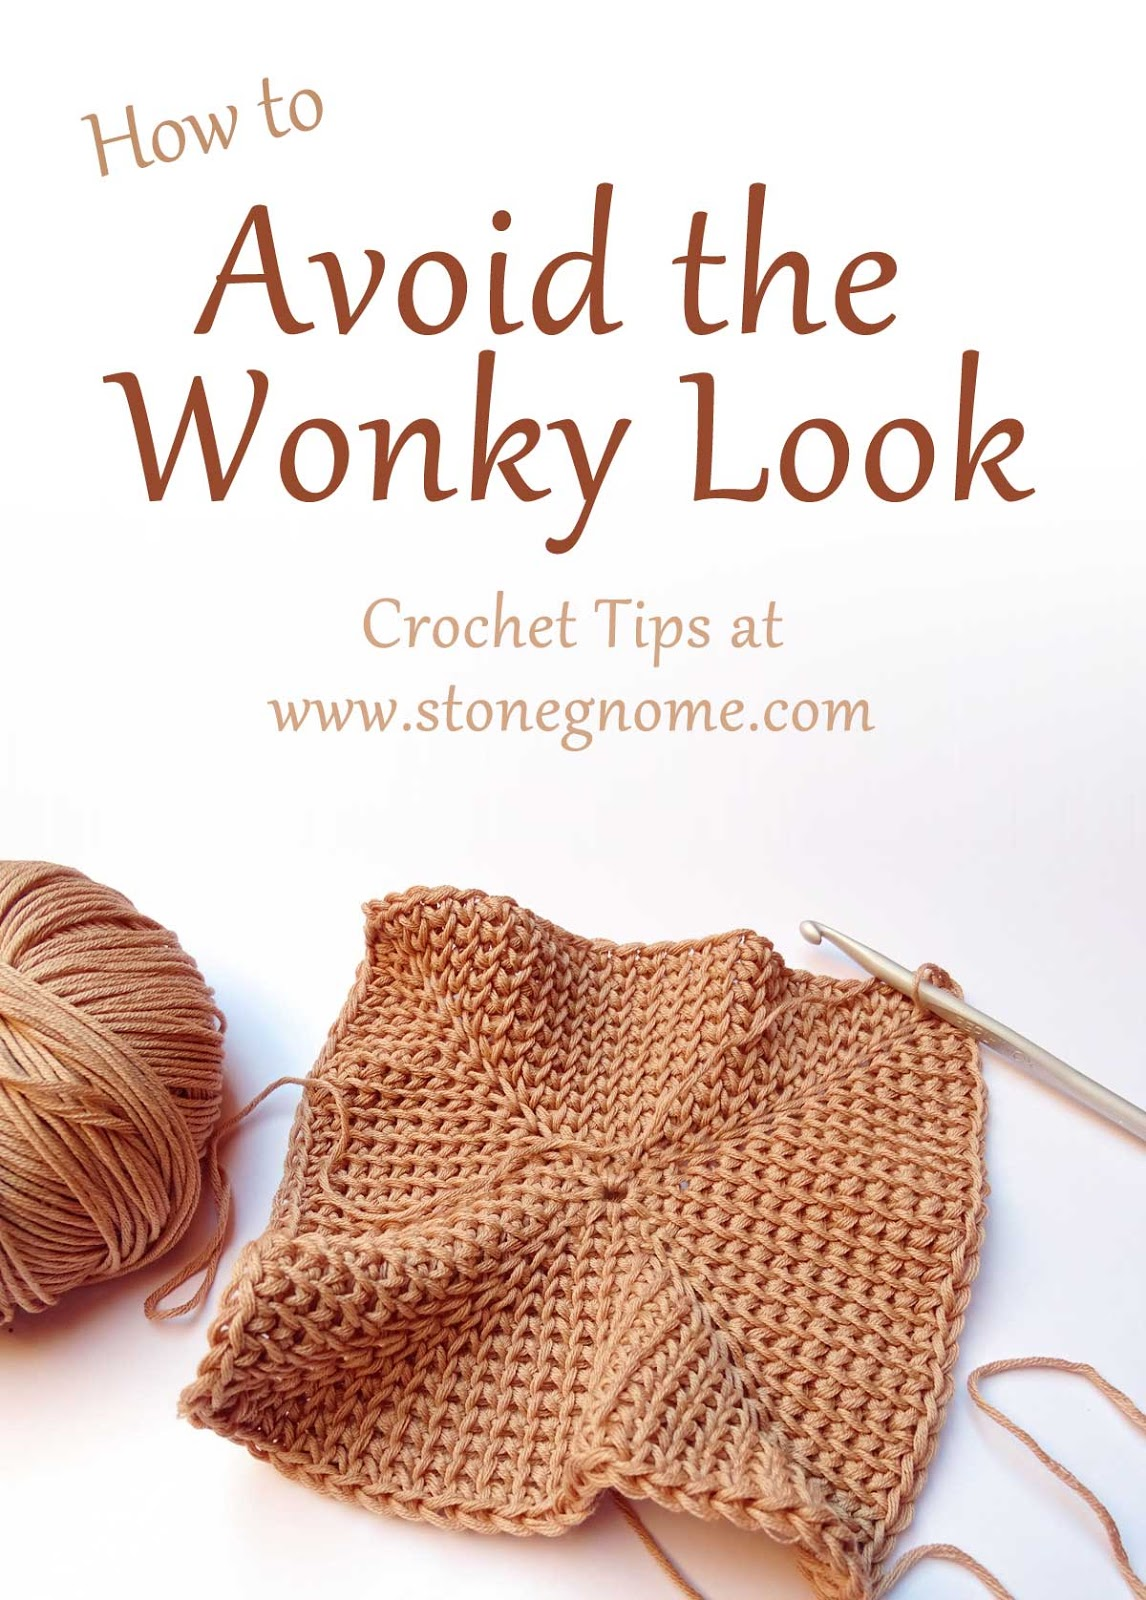 How to avoid the Wonky Look on your crocheted items